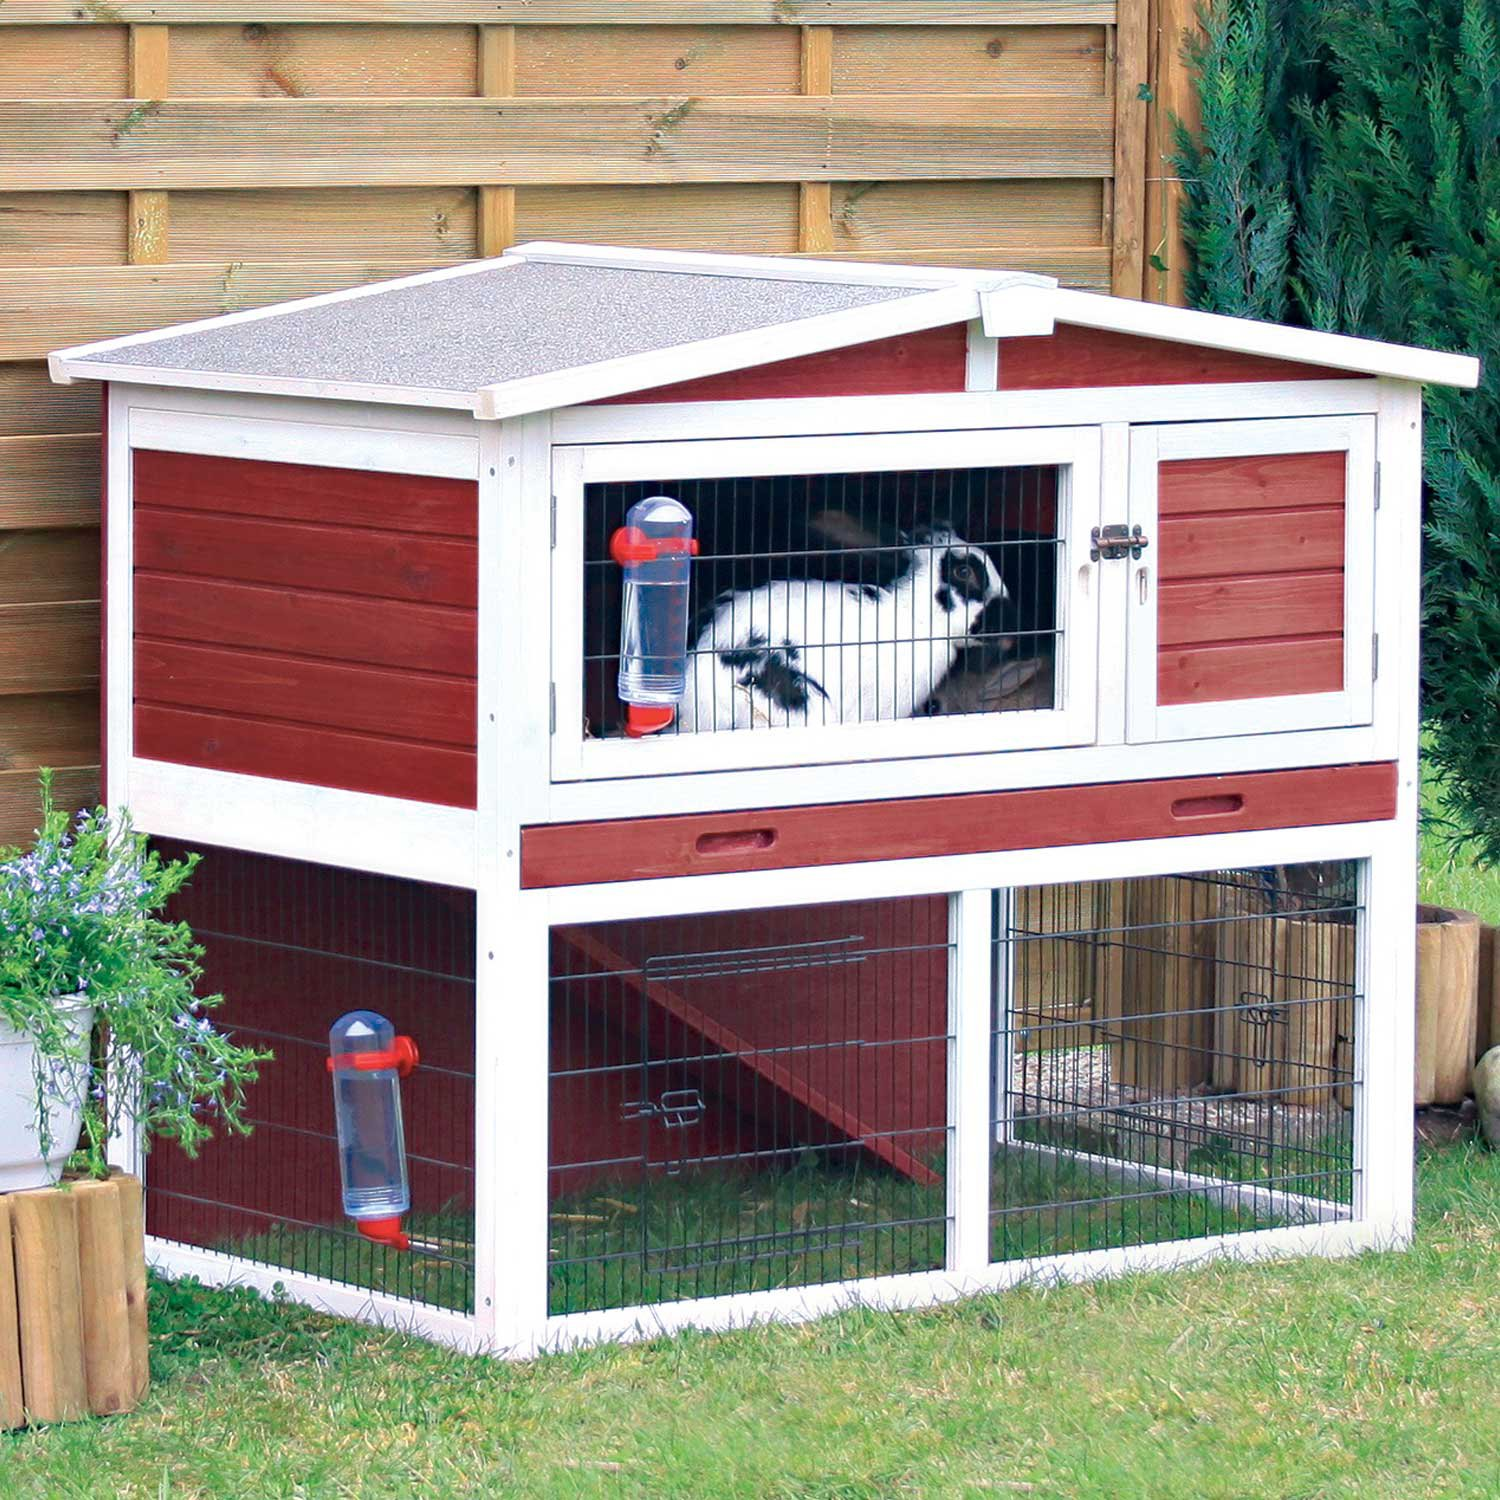 Trixie Natura Animal Hutch with Peaked Roof in Red & White